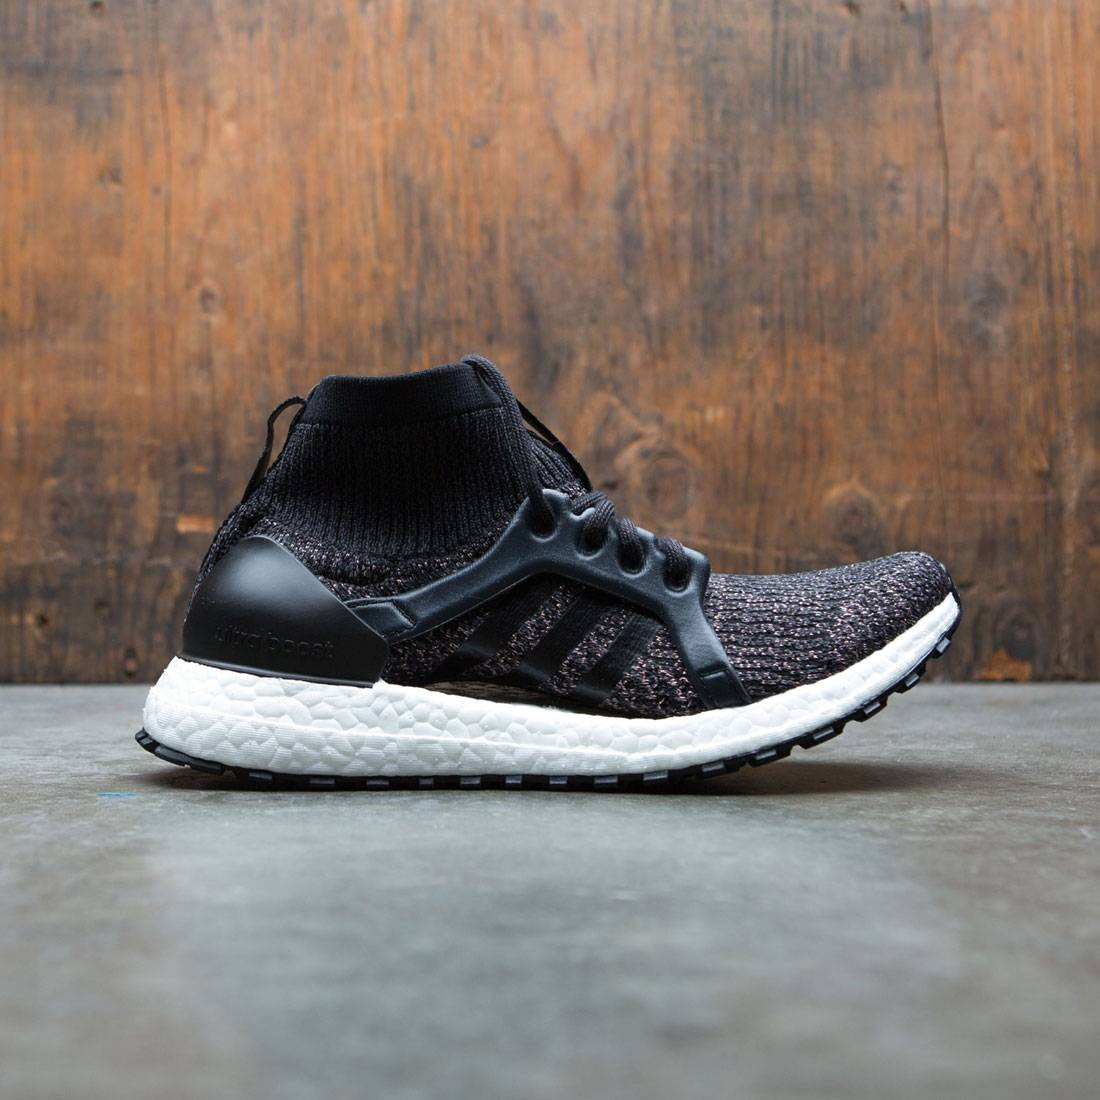 452c37be8 Adidas Women UltraBOOST X All Terrain LTD black core black tech rust  metallic